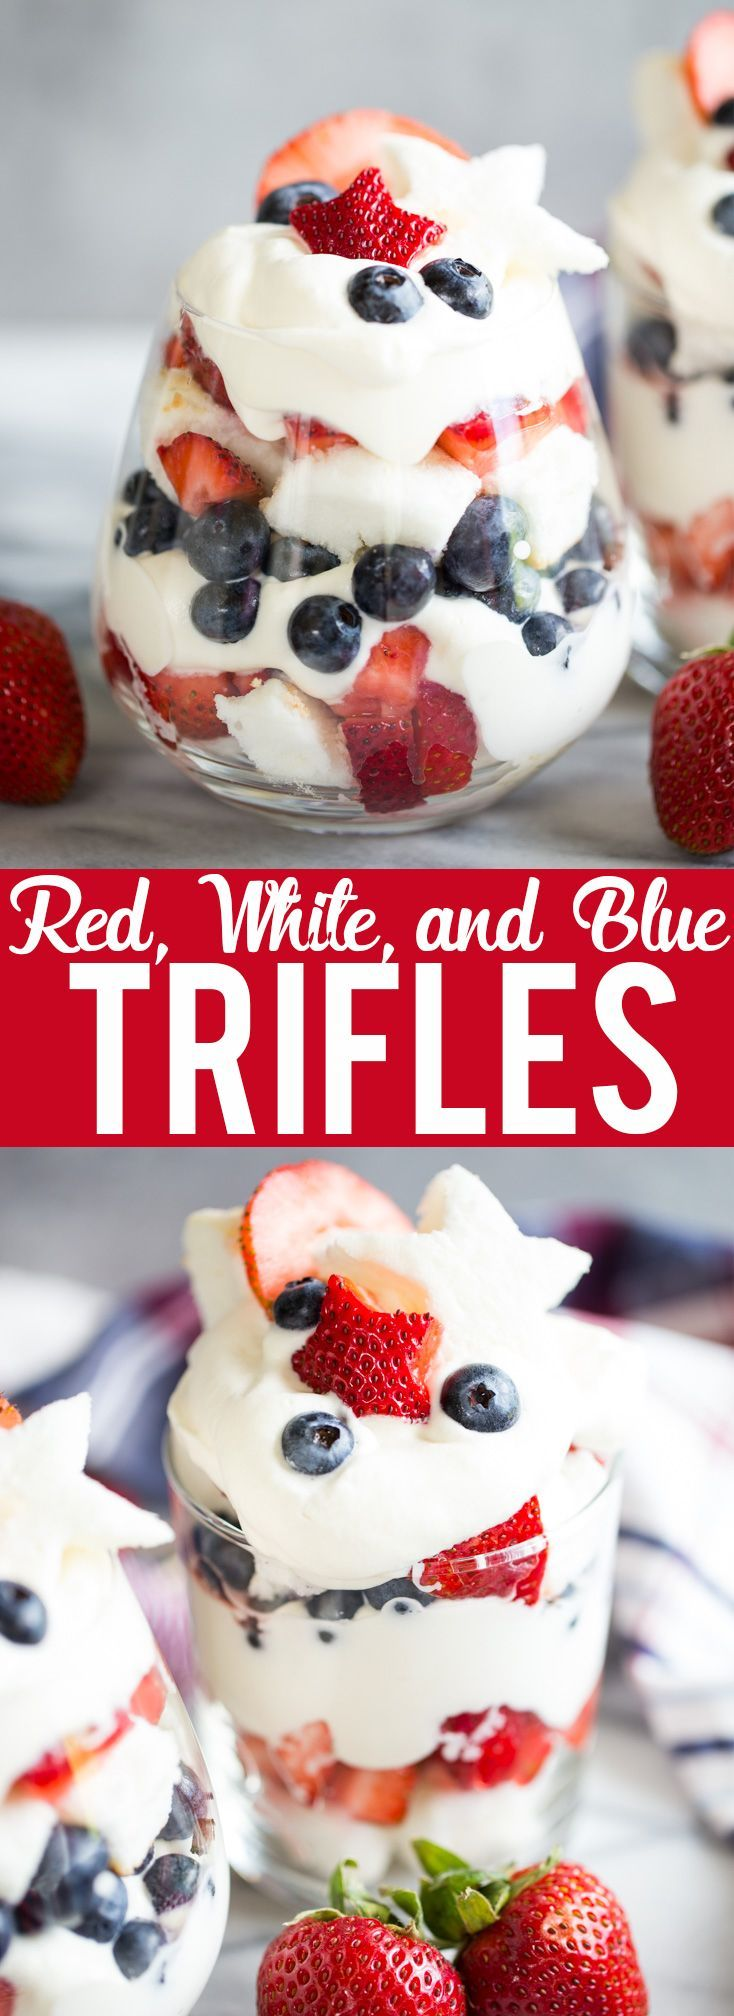 These Red, White, and Blue Trifles are an easy and delicious dessert for Fourth of July, Memorial Day, Labor Day or any Summer BBQ! | Red white and blue dessert | fourth of July dessert | Labor day dessert | Summer Dessert | Dessert Recipe for BBQ | 4th of July